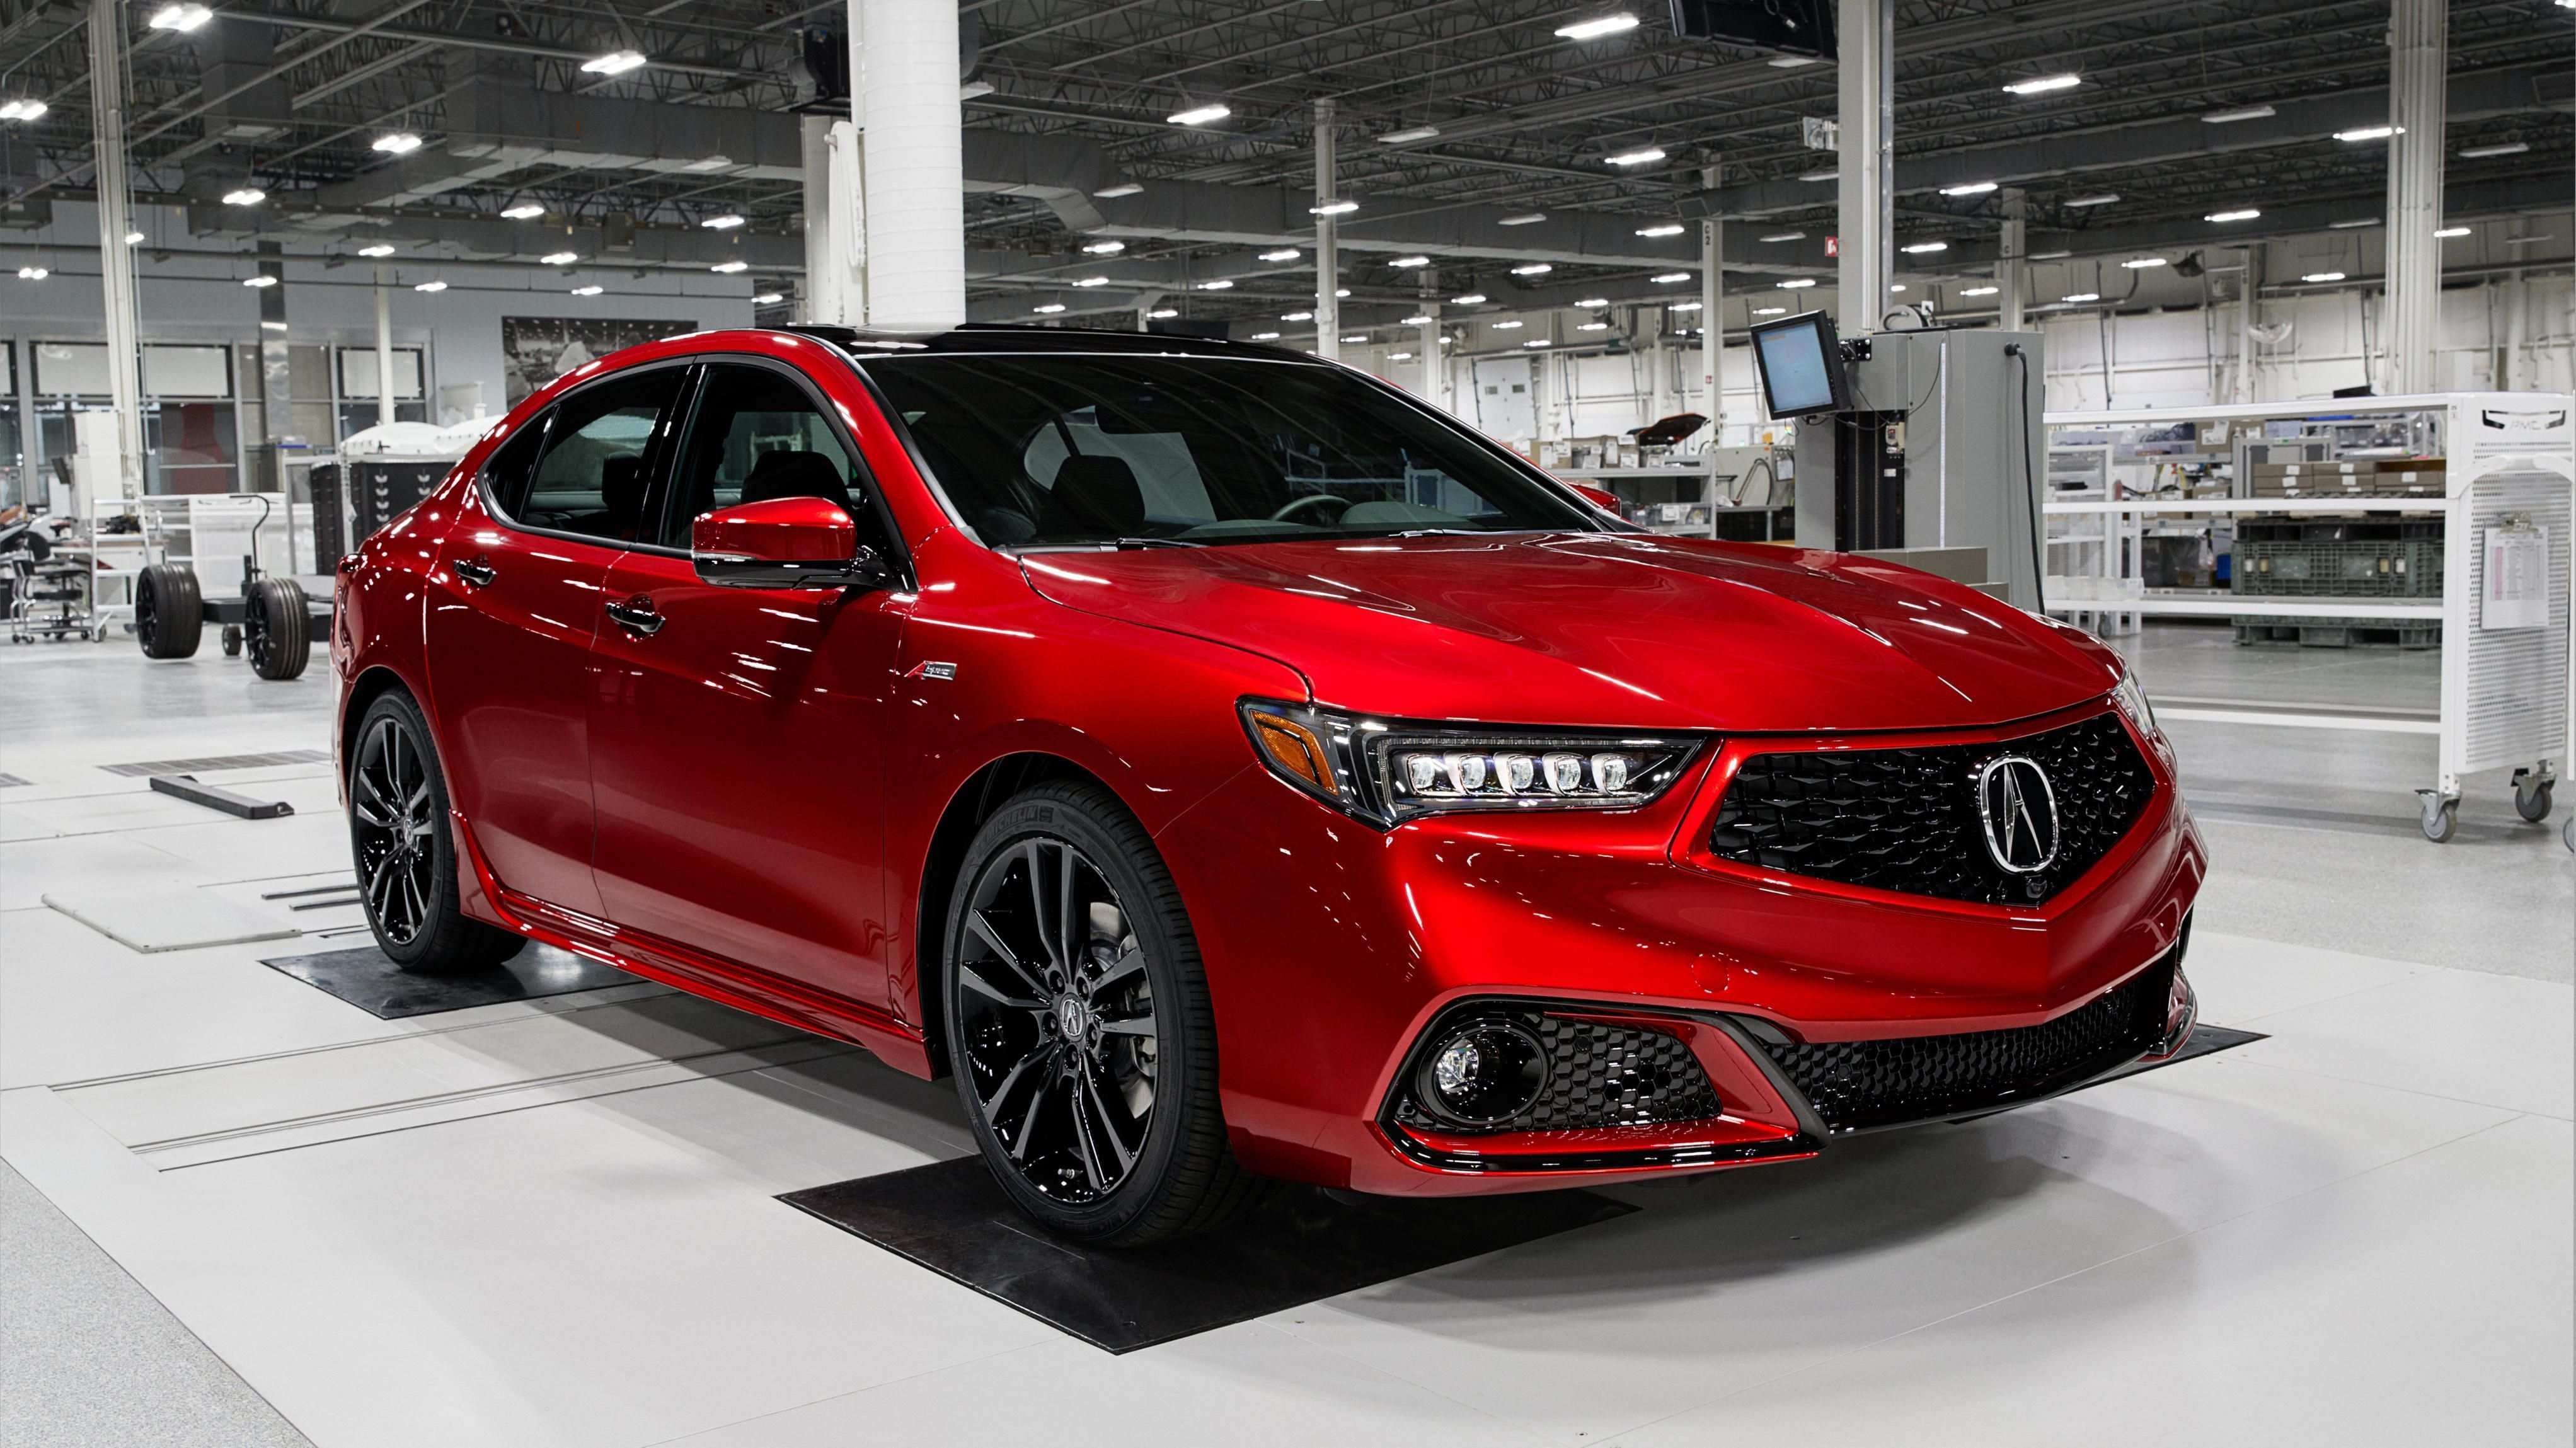 25 All New Release Date For 2020 Acura Tlx New Concept by Release Date For 2020 Acura Tlx